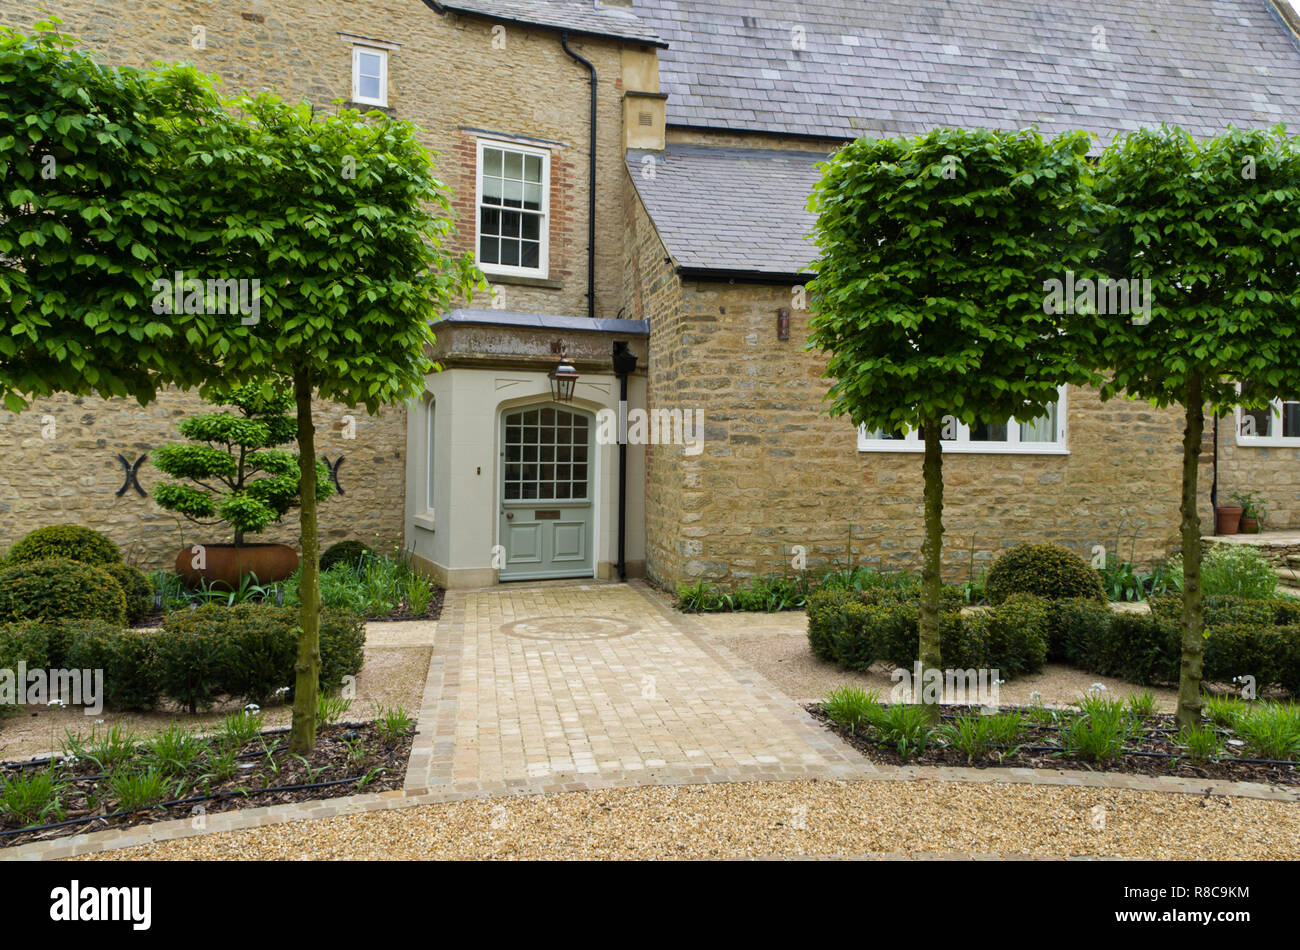 The frontage of the Old Rectory, Quinton, Northamptonshire, UK; an 18th century building set in landscaped gardens by Anoushka Fieler. - Stock Image